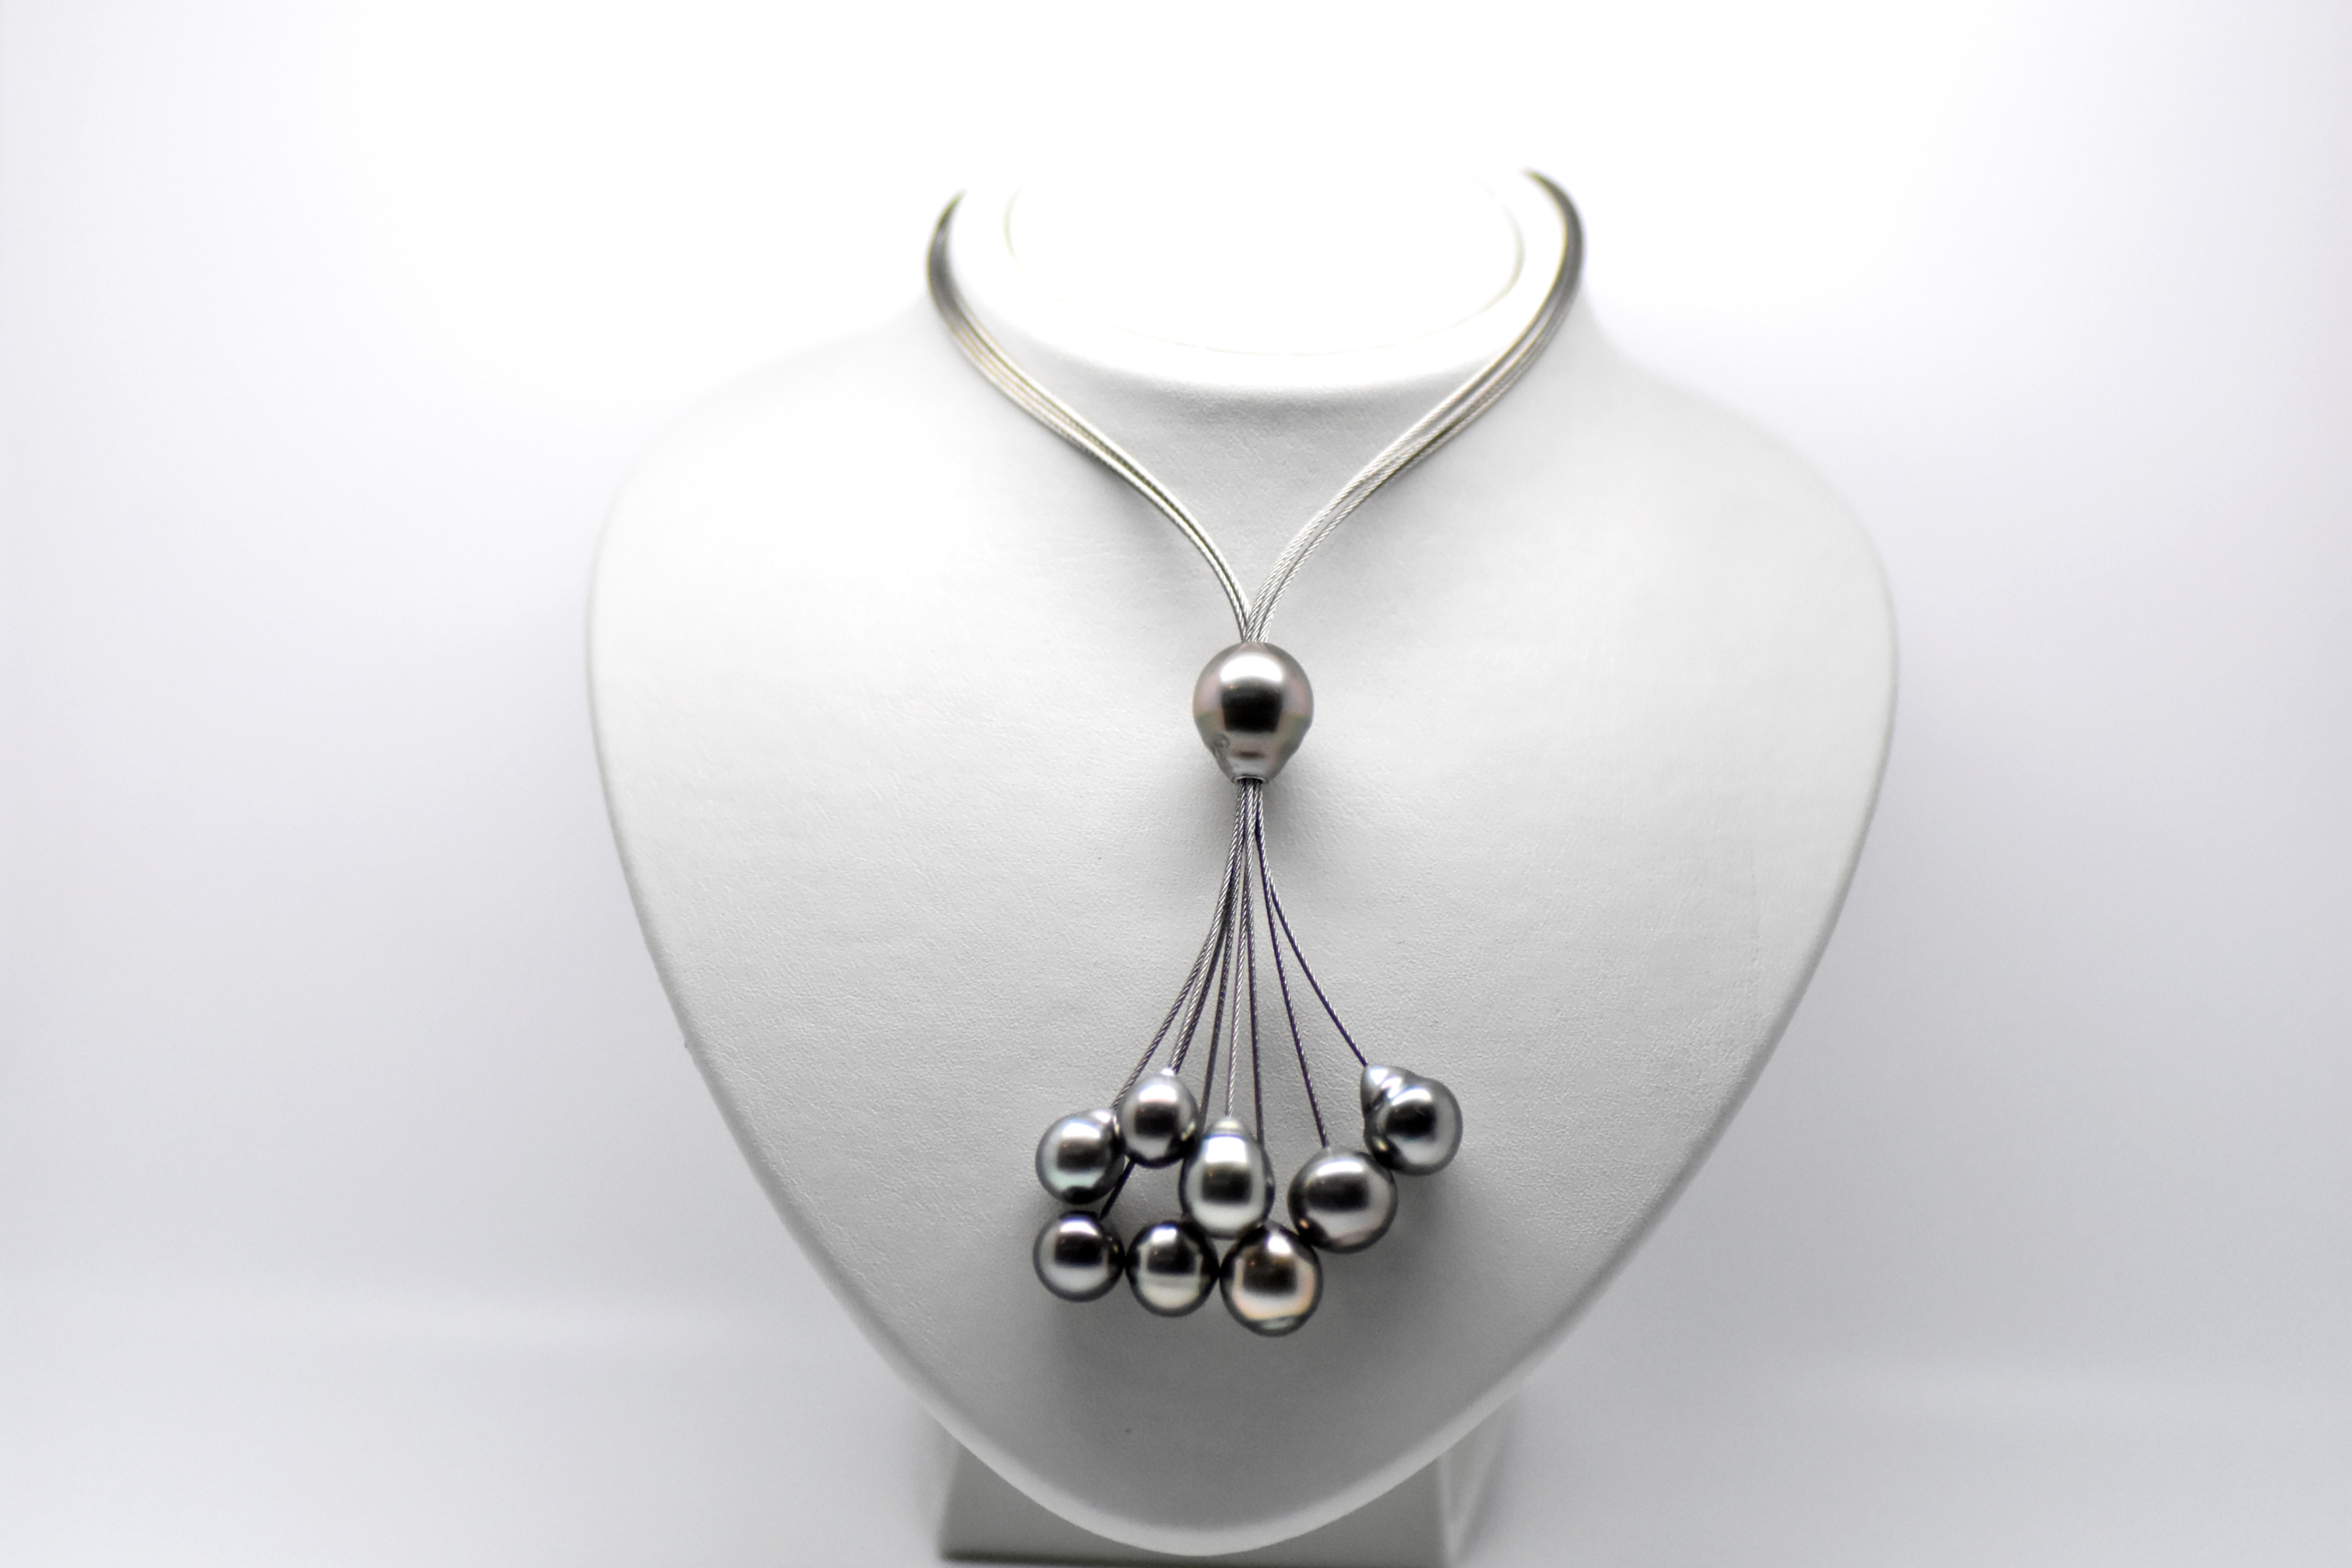 BLACK CLOUD necklace stainless steel wire with 9 Tahitian pearls